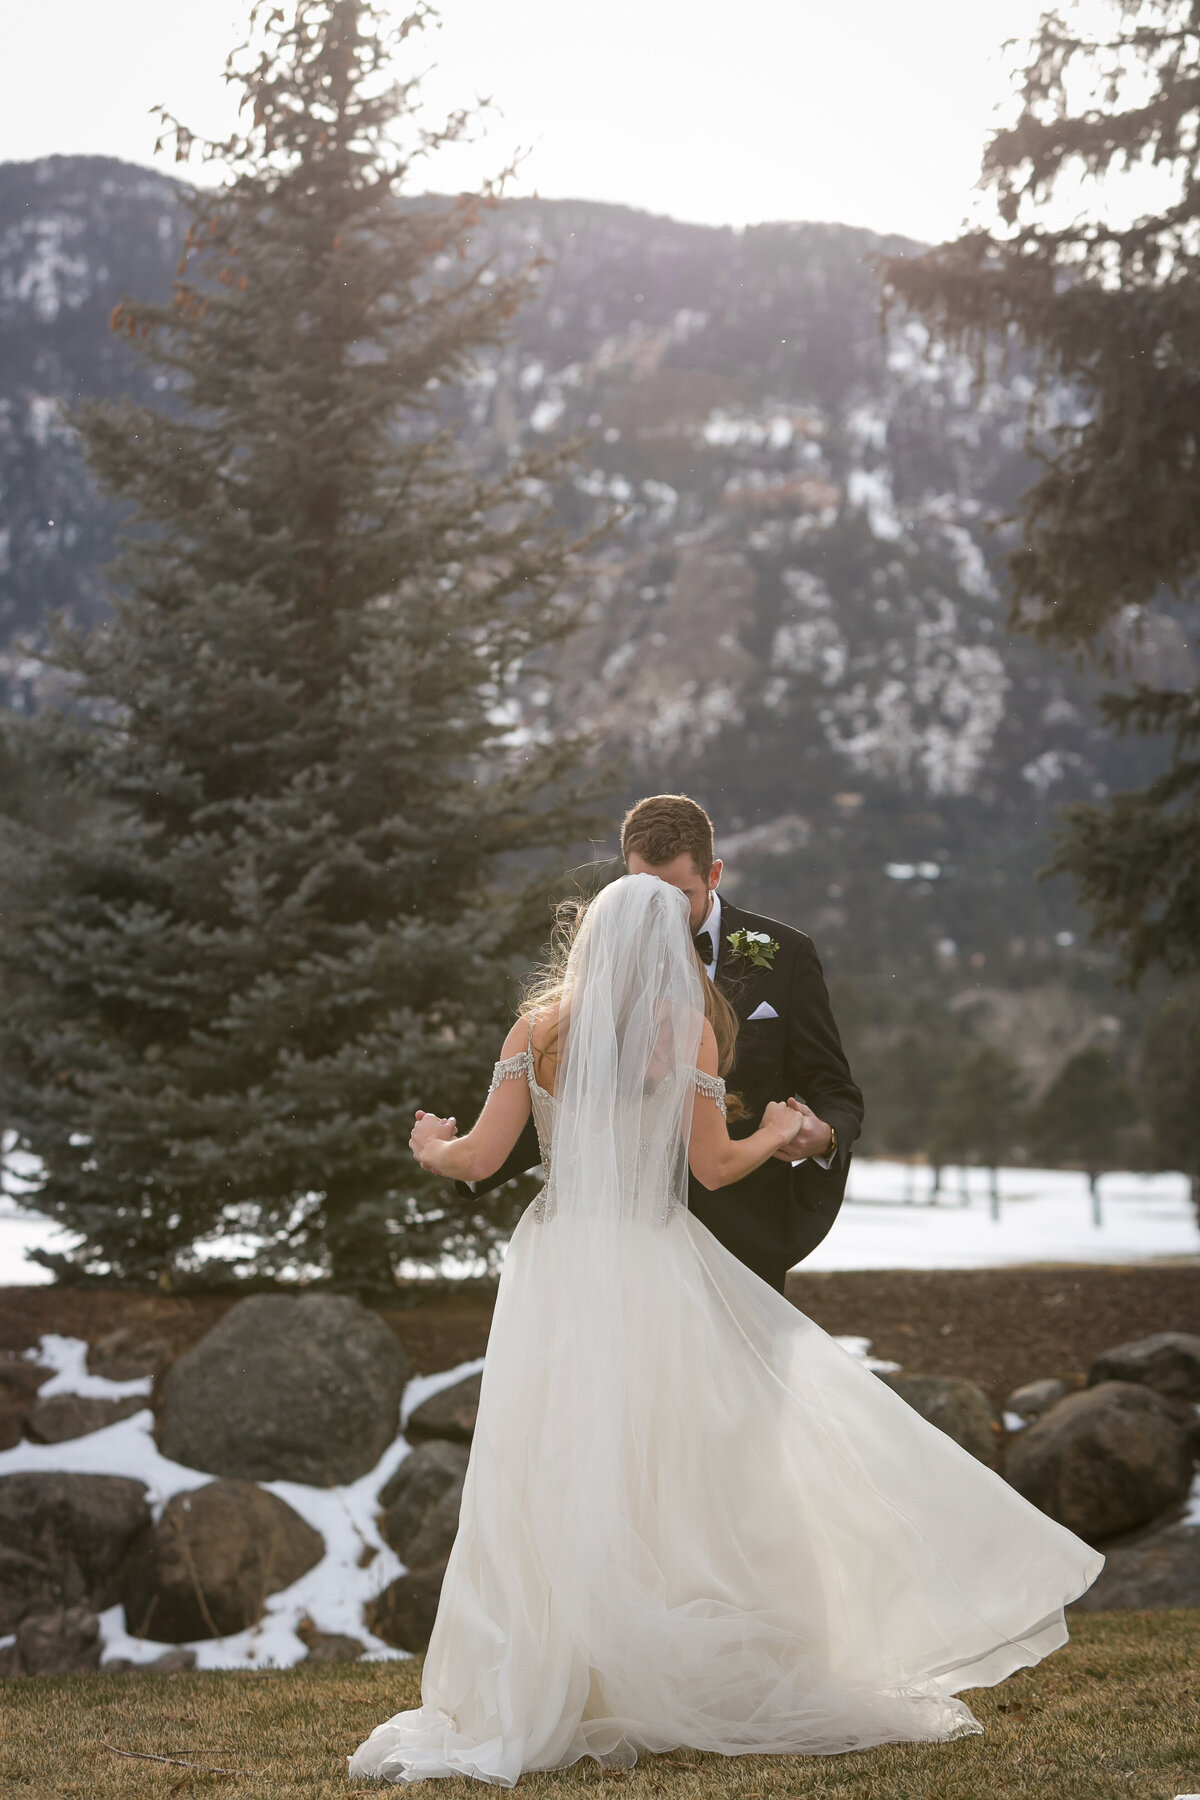 Colorado wedding photographer carter rose texas -0010